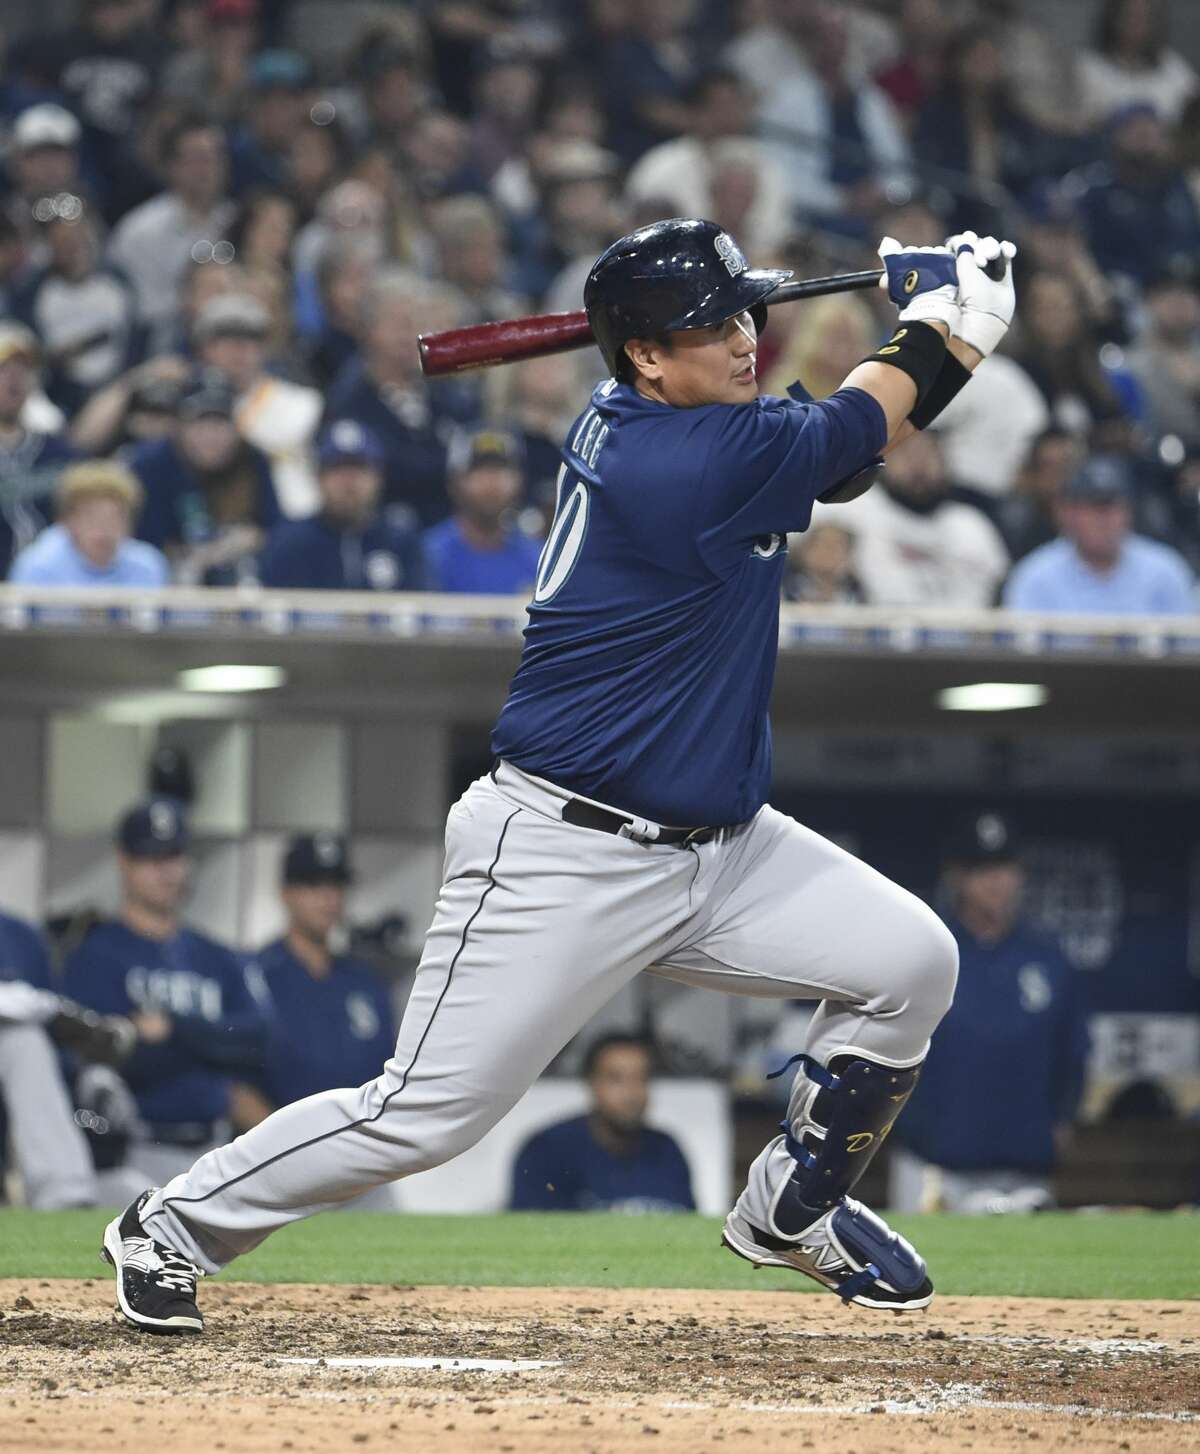 Dae-Ho Lee of the Seattle Mariners hits an RBI single during the seventh inning of a baseball game against the San Diego Padres at PETCO Park on June 2, 2016 in San Diego, California. (Photo by Denis Poroy/Getty Images)